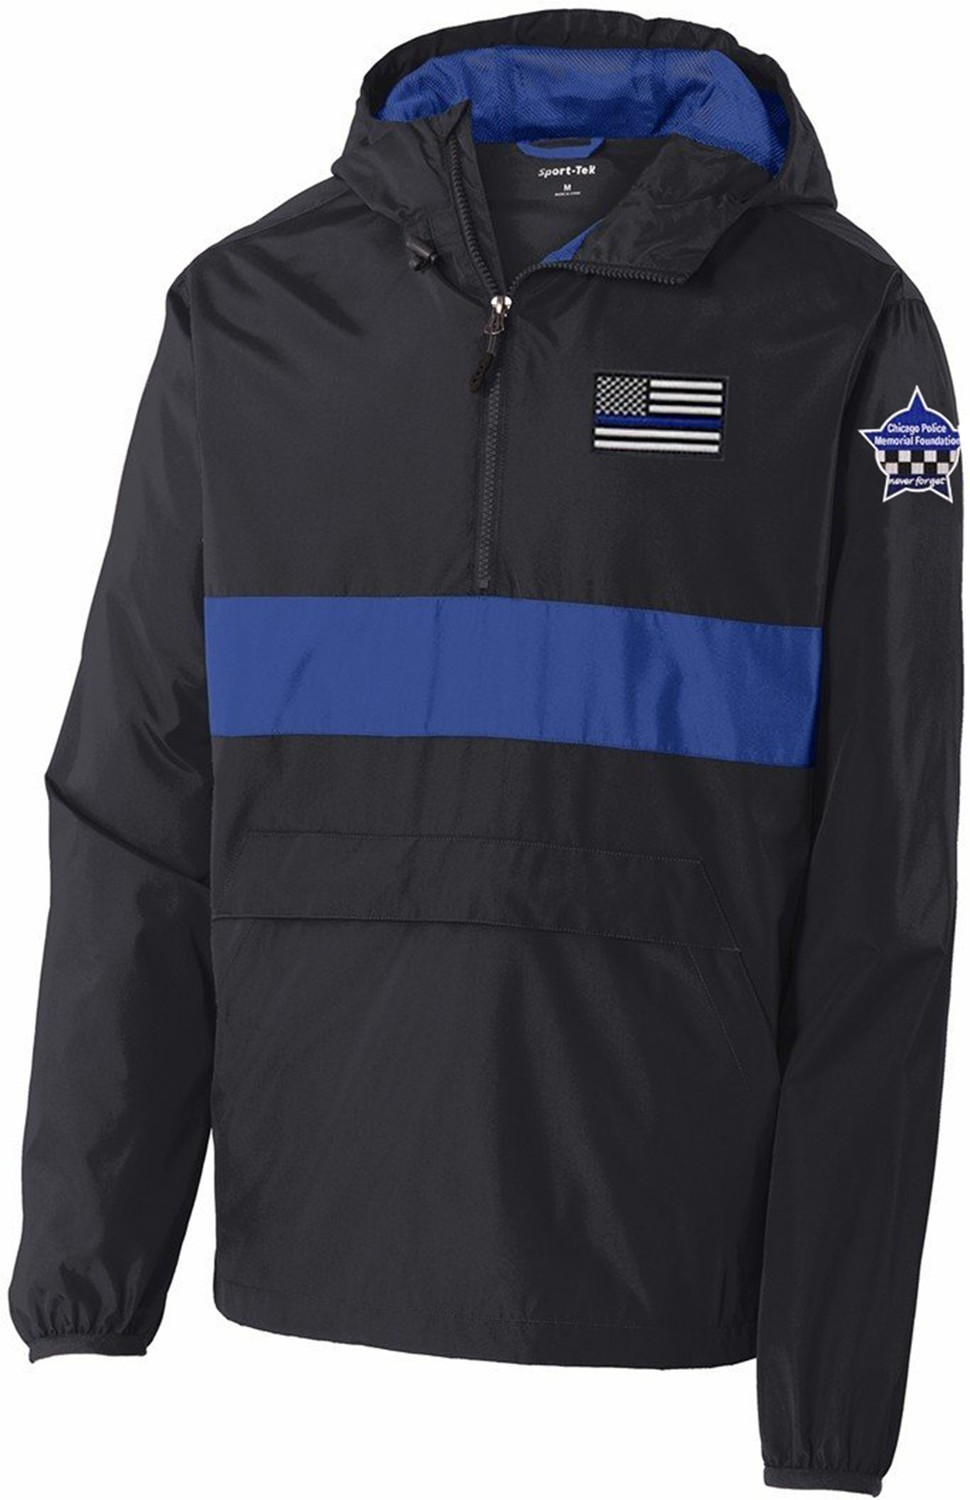 CPD Memorial Zipped Pocket Anorak Jacket 1/2 Zip